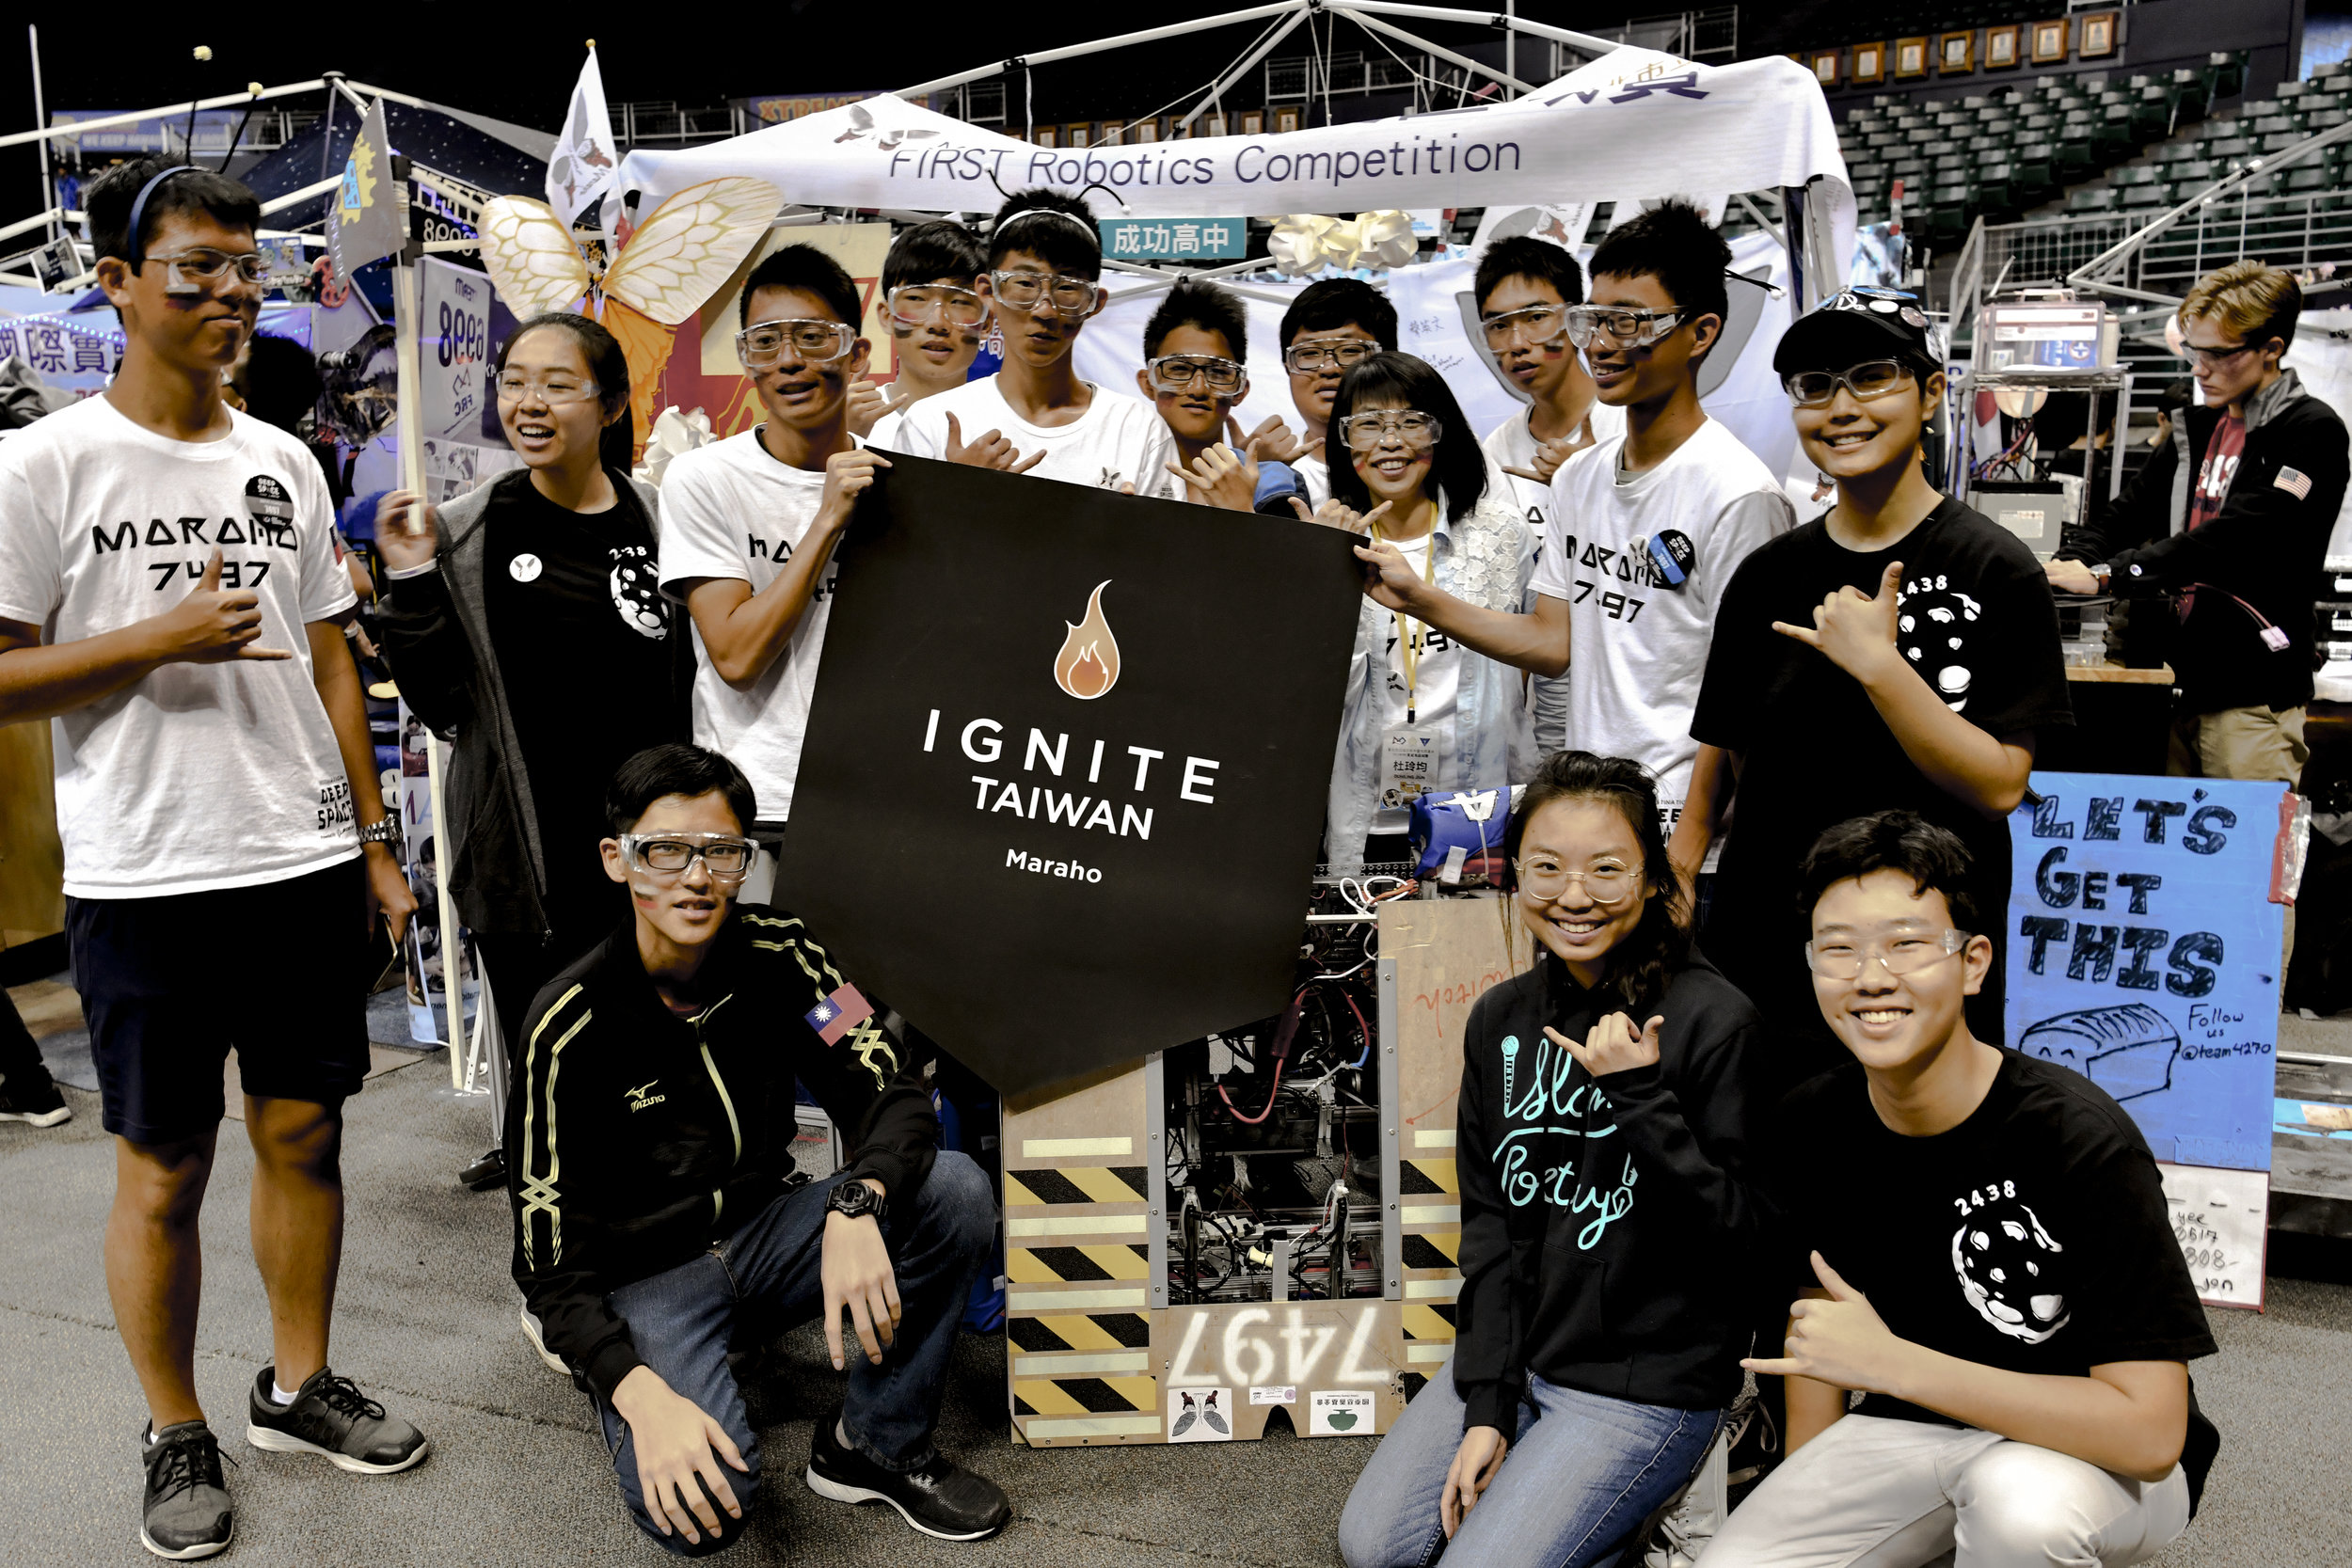 be part of something meaningful - Join the Ignite Initiative